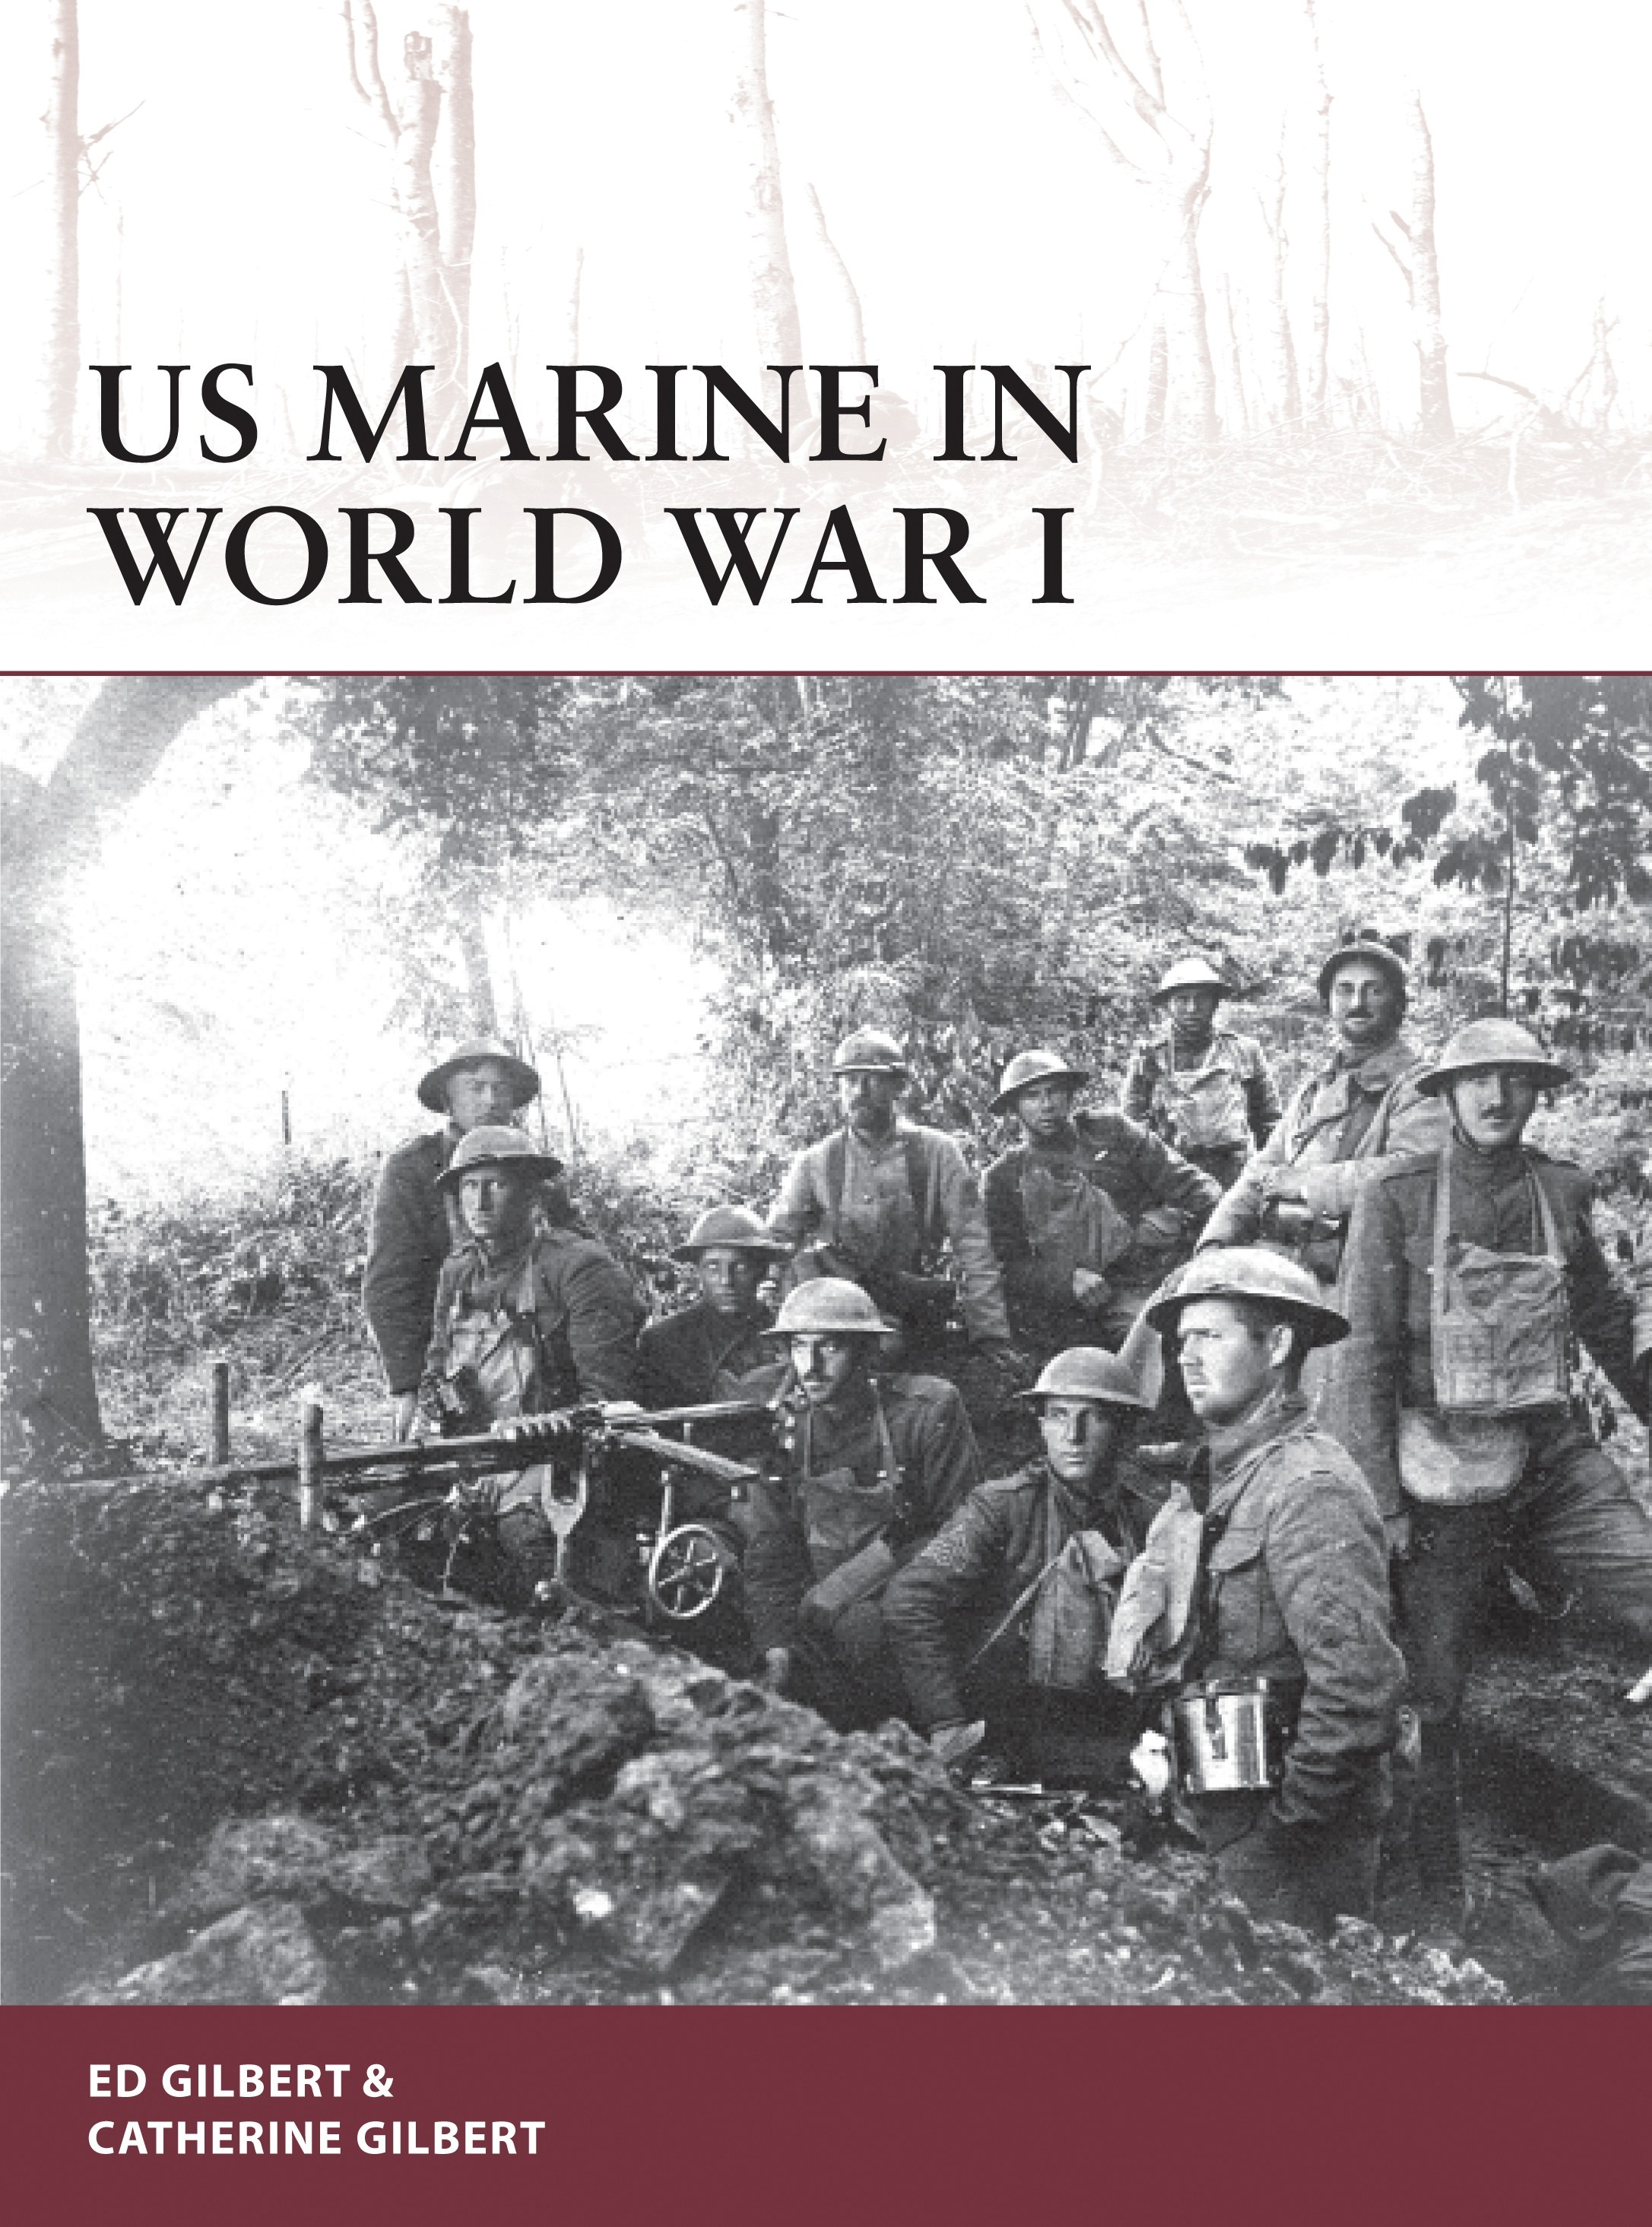 US Marine in World War I